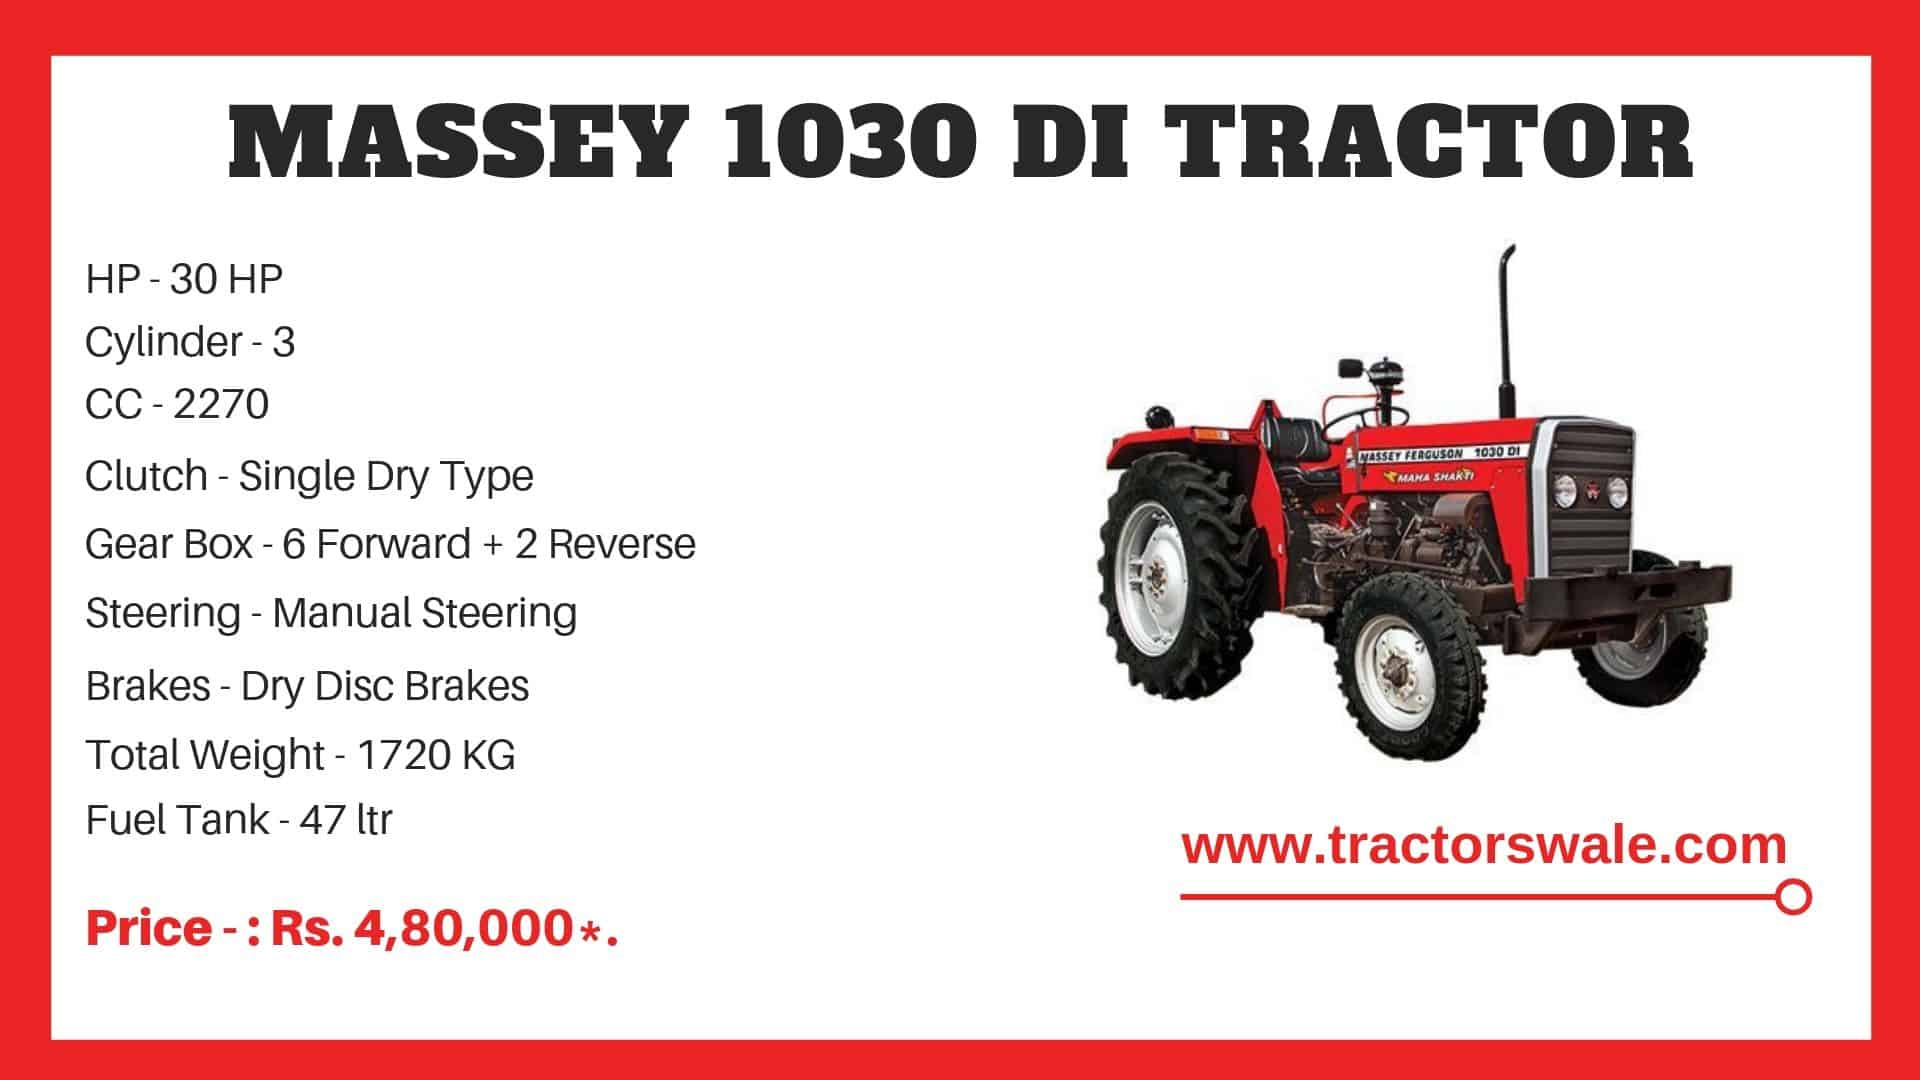 Specifications Of Massey Ferguson 1030 di